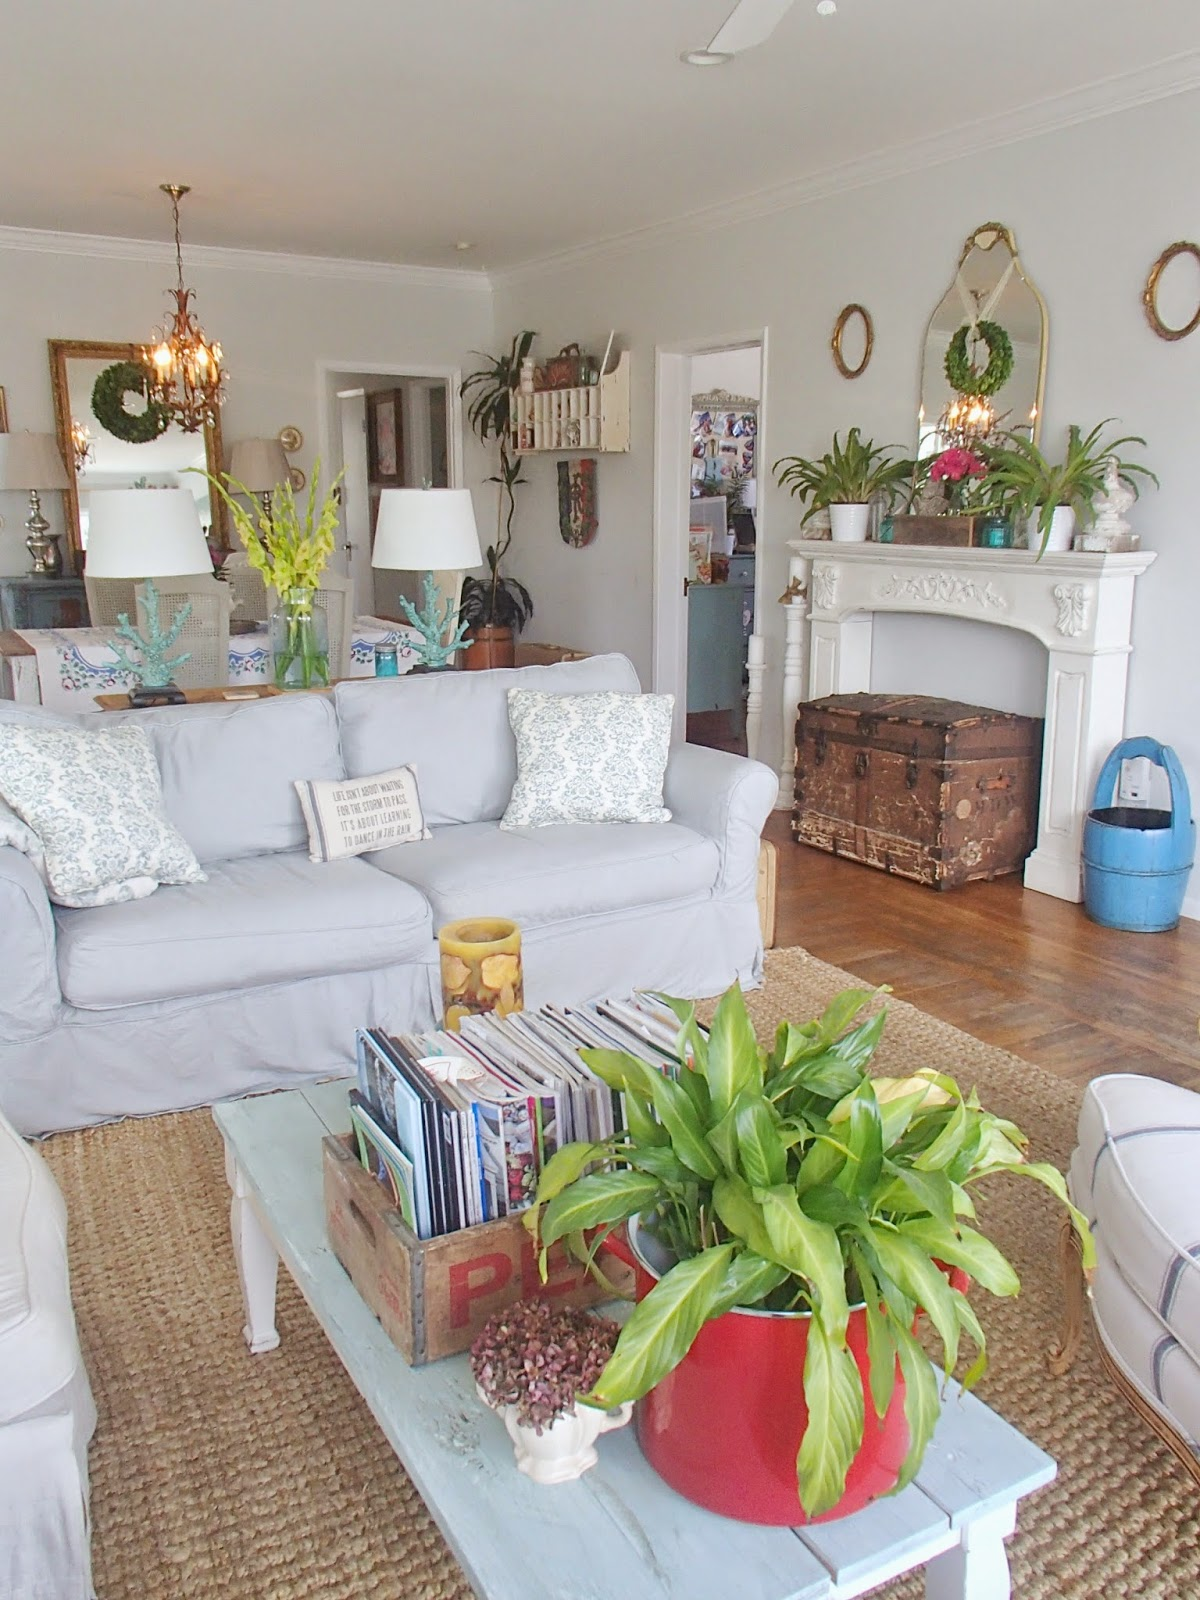 From My Front Porch To Yours-How I Found My Style Sundays-D.D.'s Cottage and Design